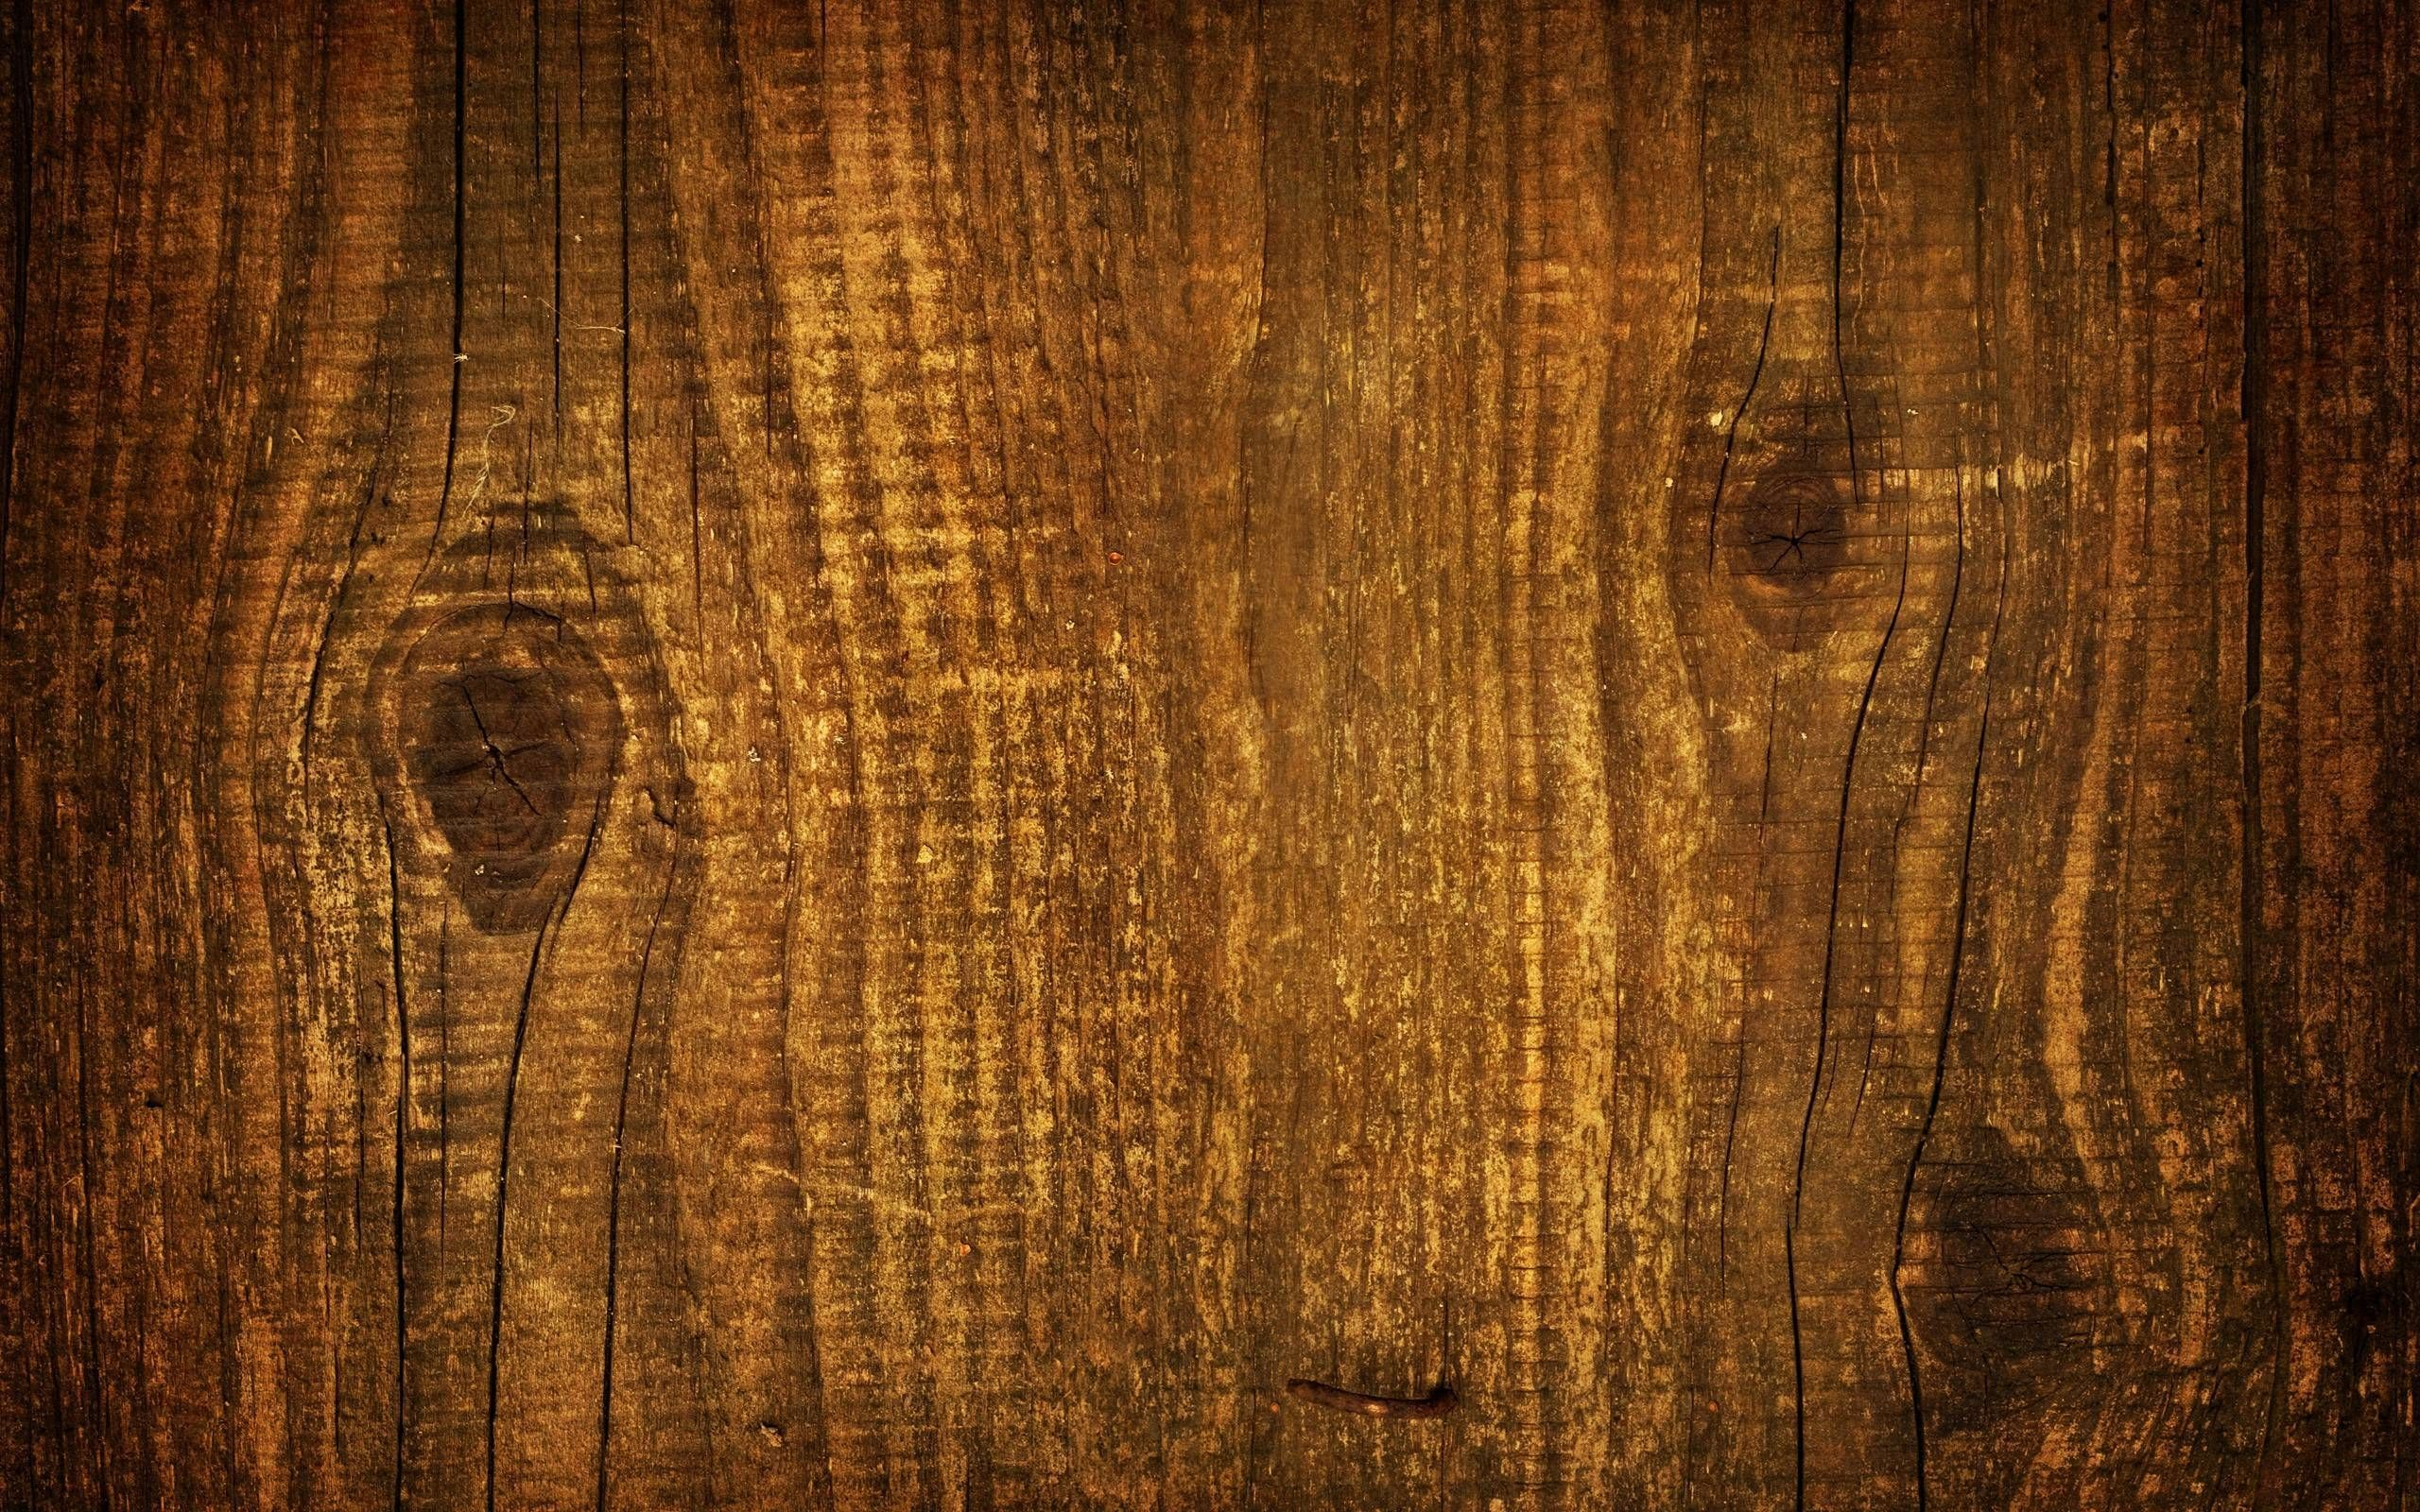 Wood Texture Wallpapers - Top Free Wood